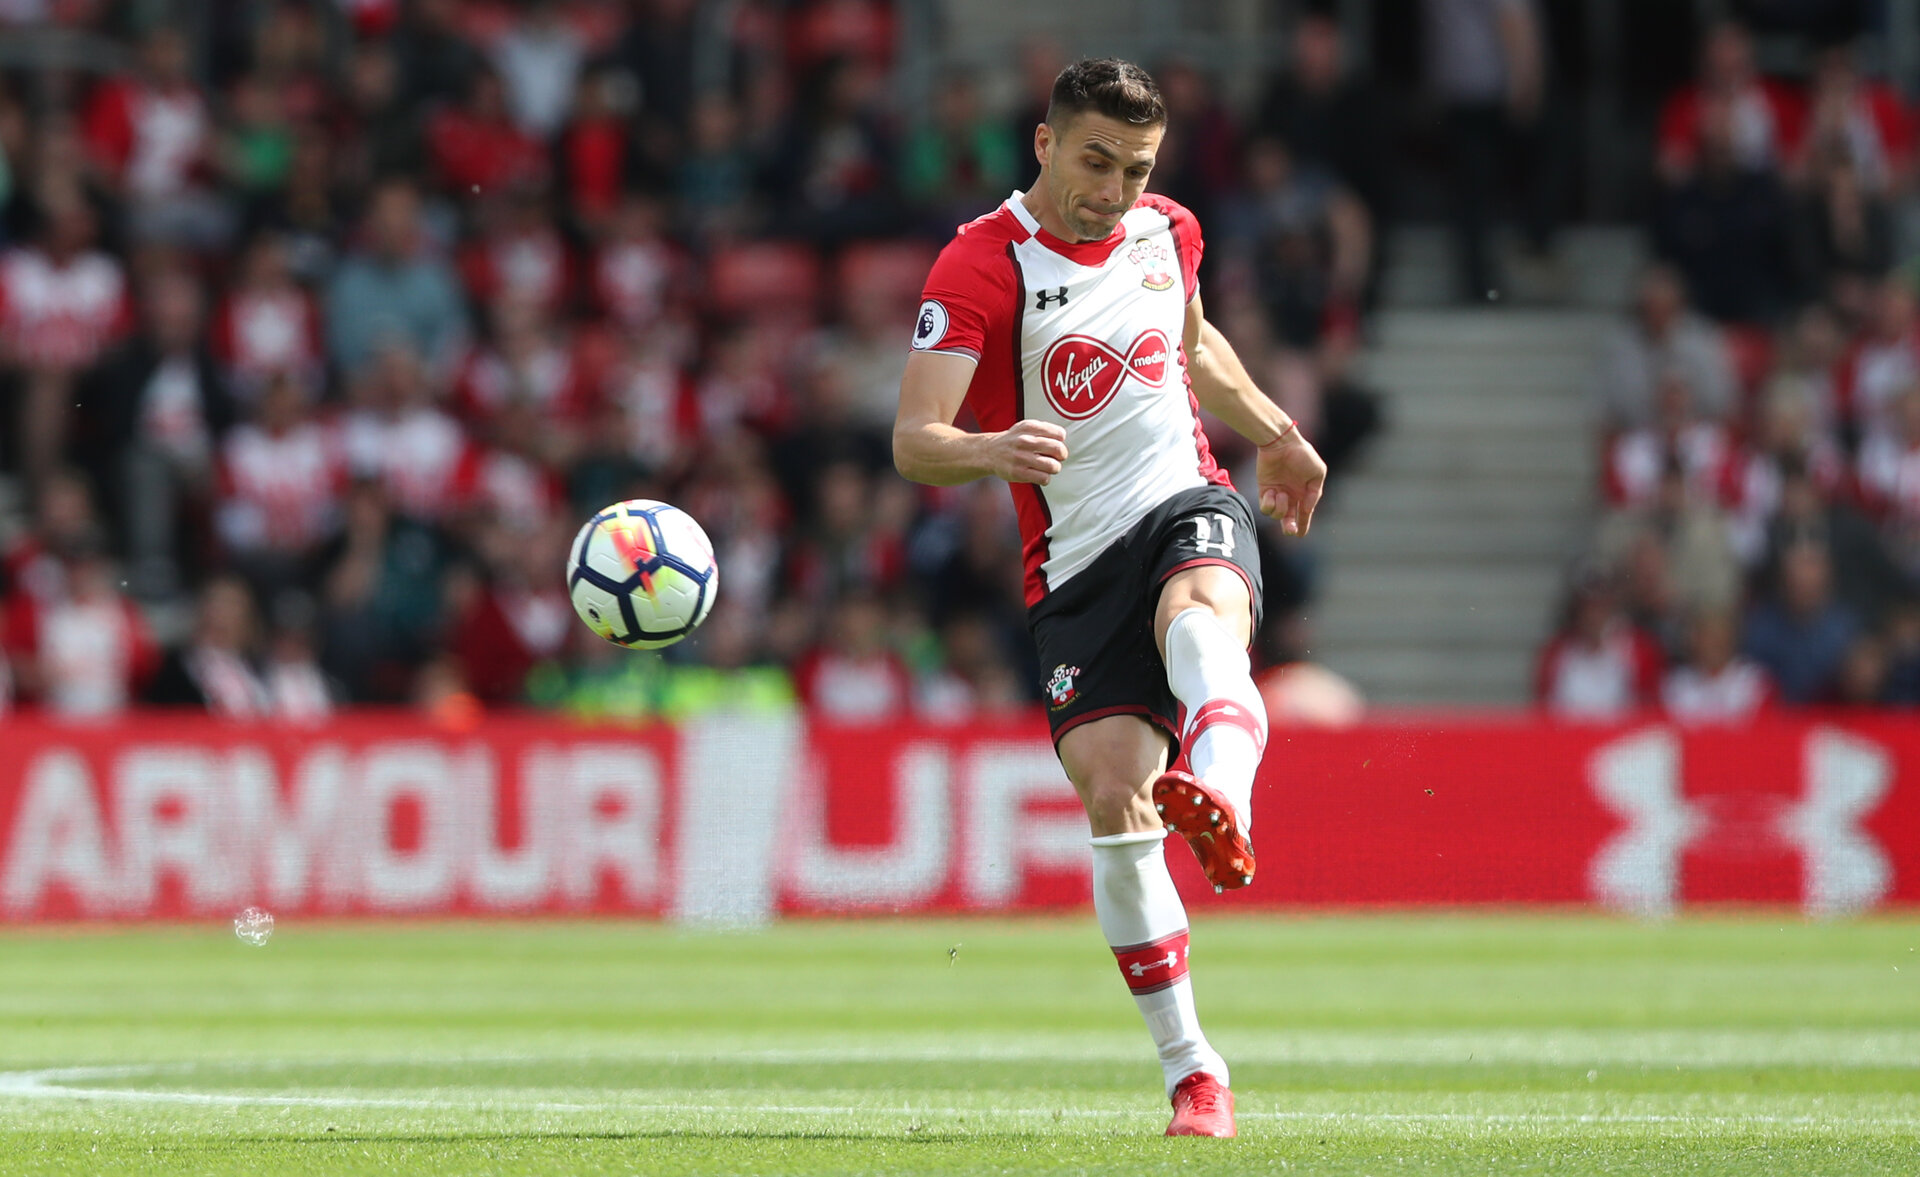 SOUTHAMPTON, ENGLAND - MAY 13: Dusan Tadic of Southampton during the Premier League match between Southampton and Manchester City at St Mary's Stadium on May 13, 2018 in Southampton, England. (Photo by Matt Watson/Southampton FC via Getty Images)